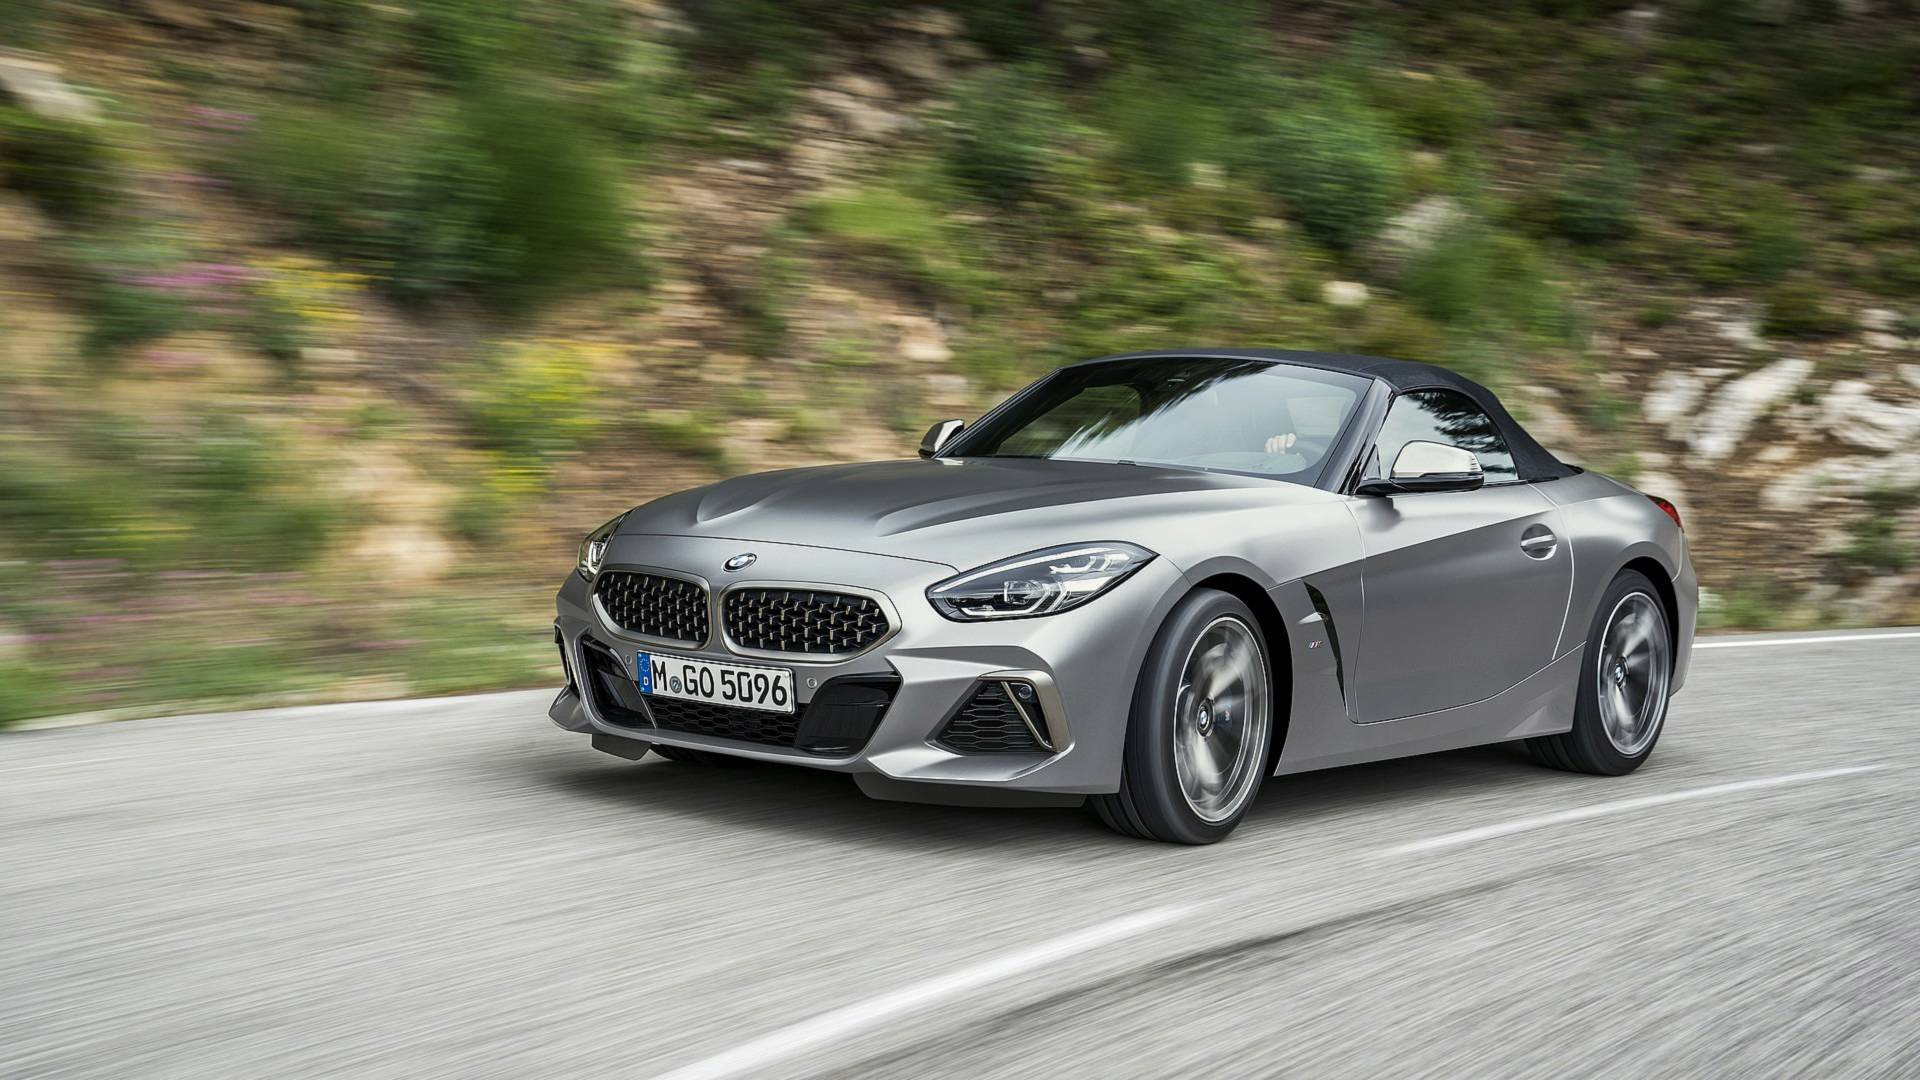 2019 Bmw Z4 Production Starts In Austria